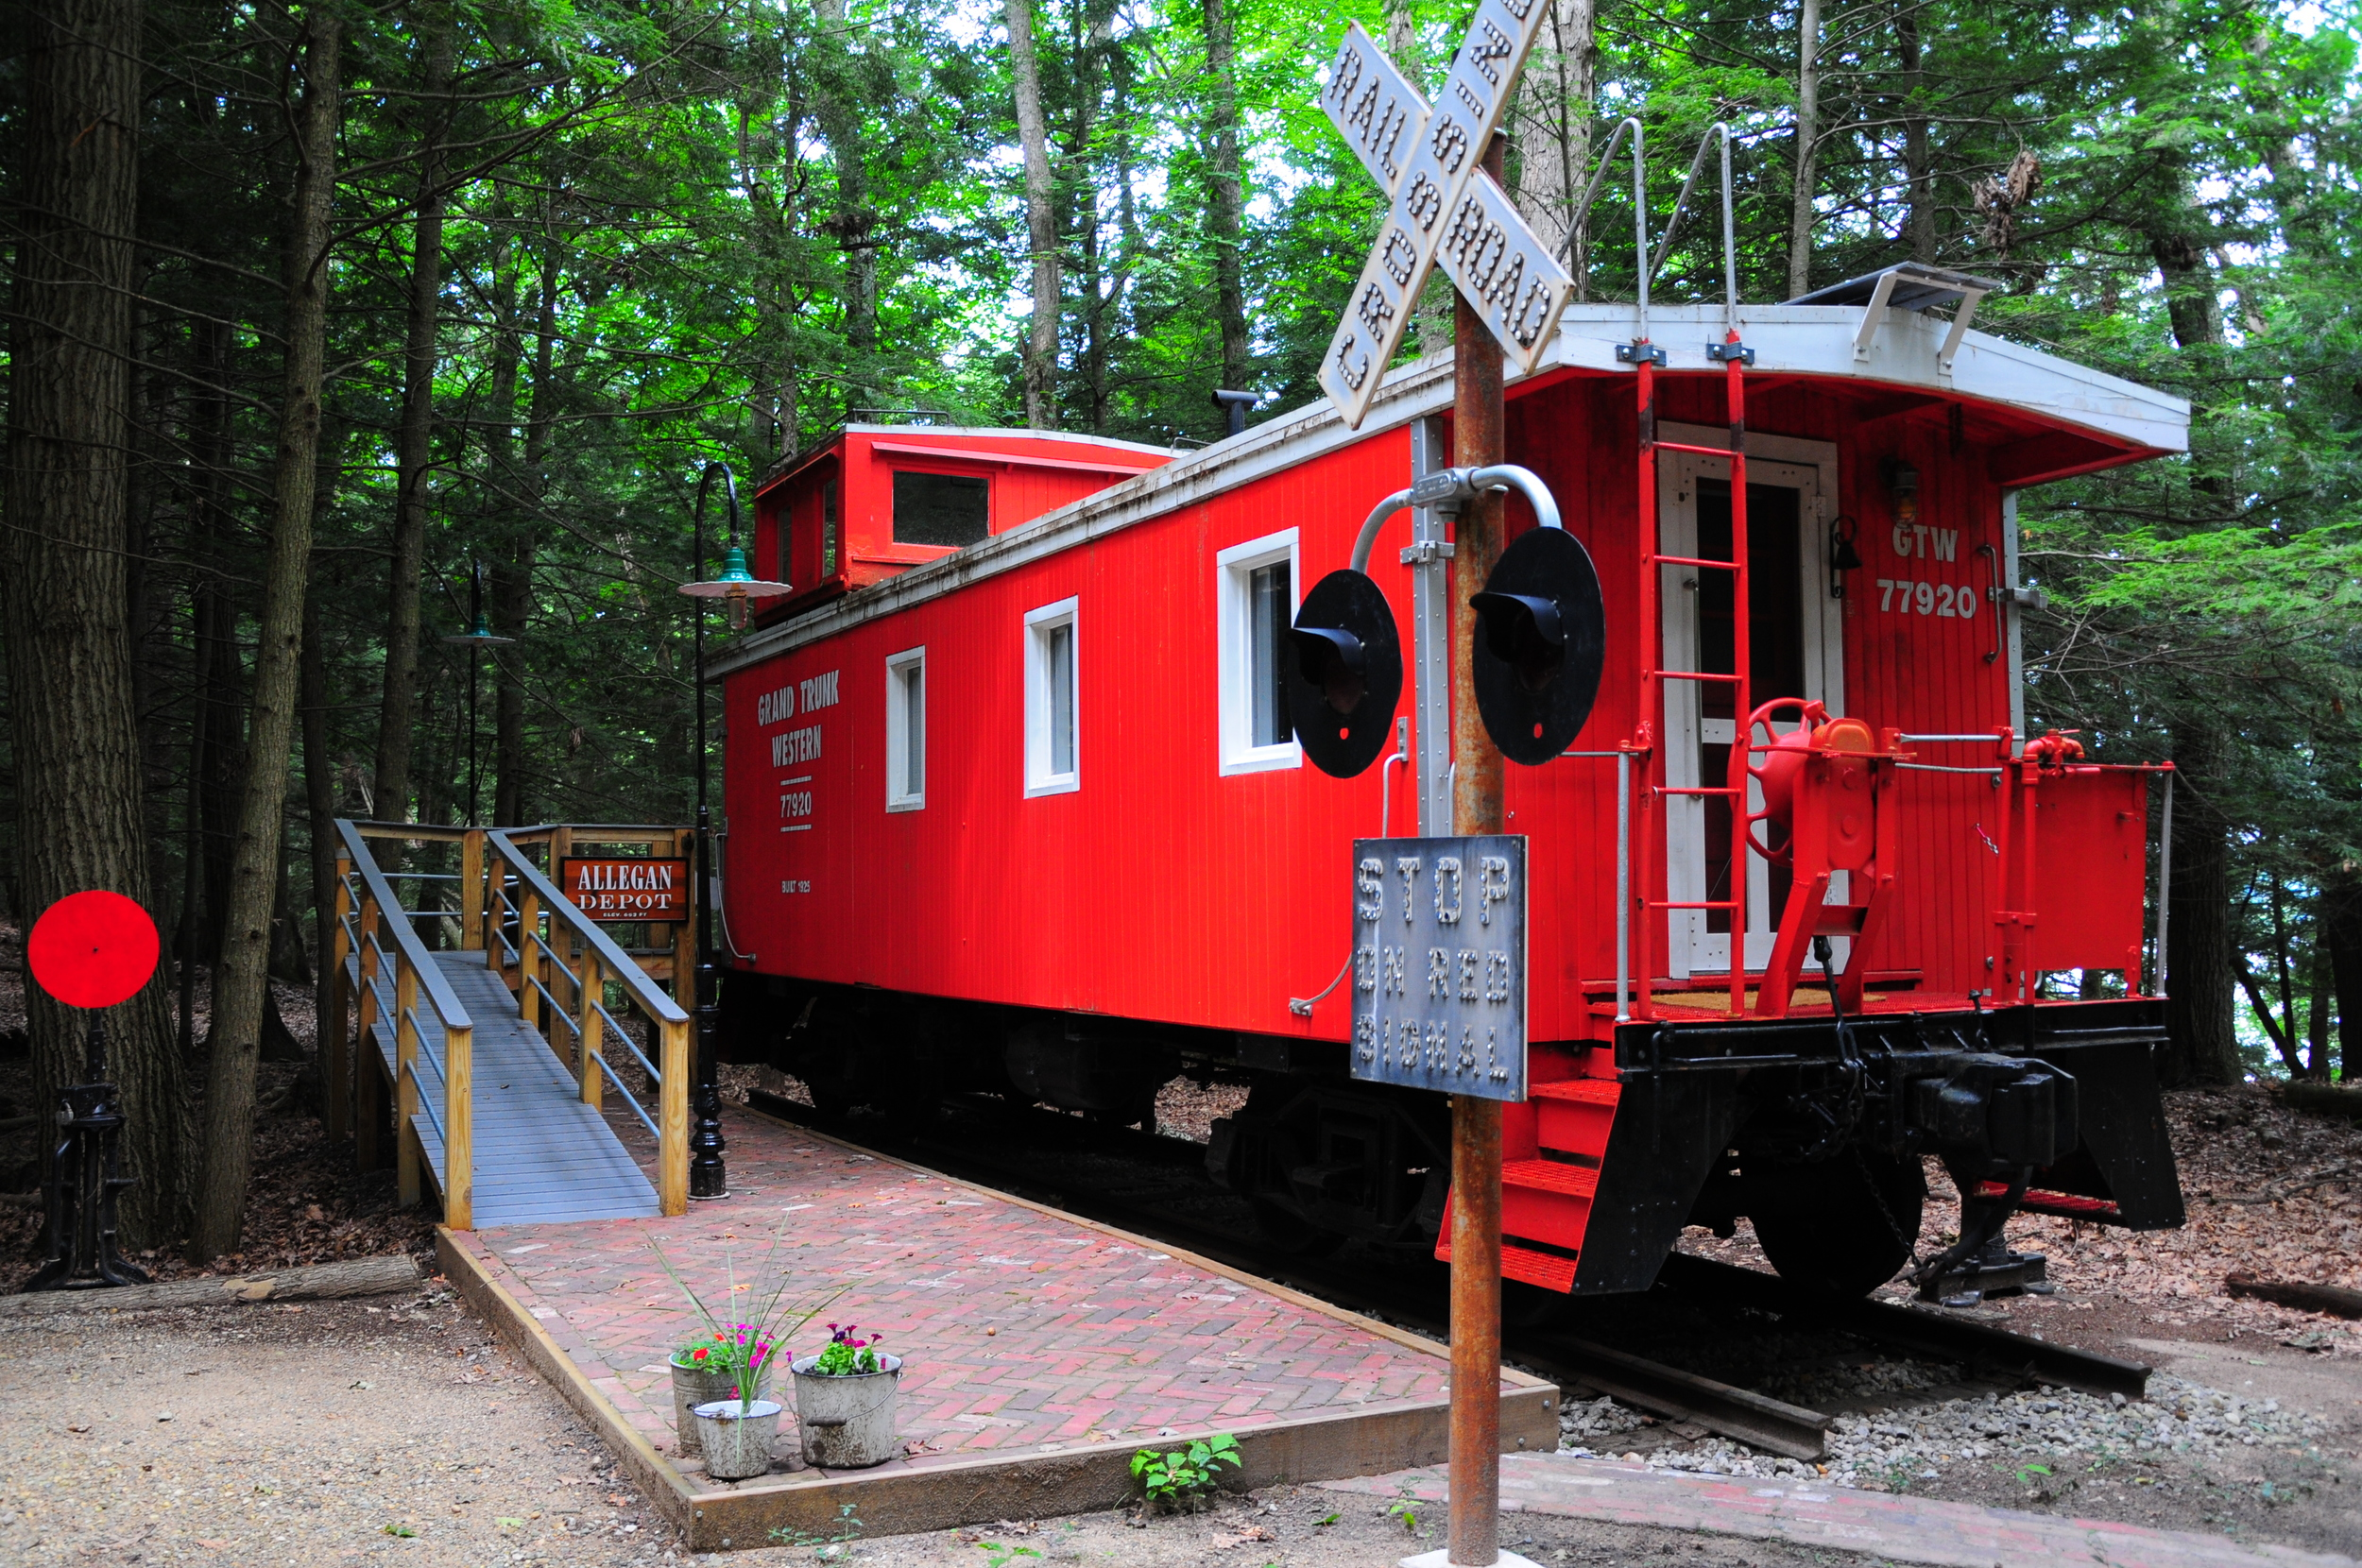 Our 1893 Caboose - a truly unique stay!